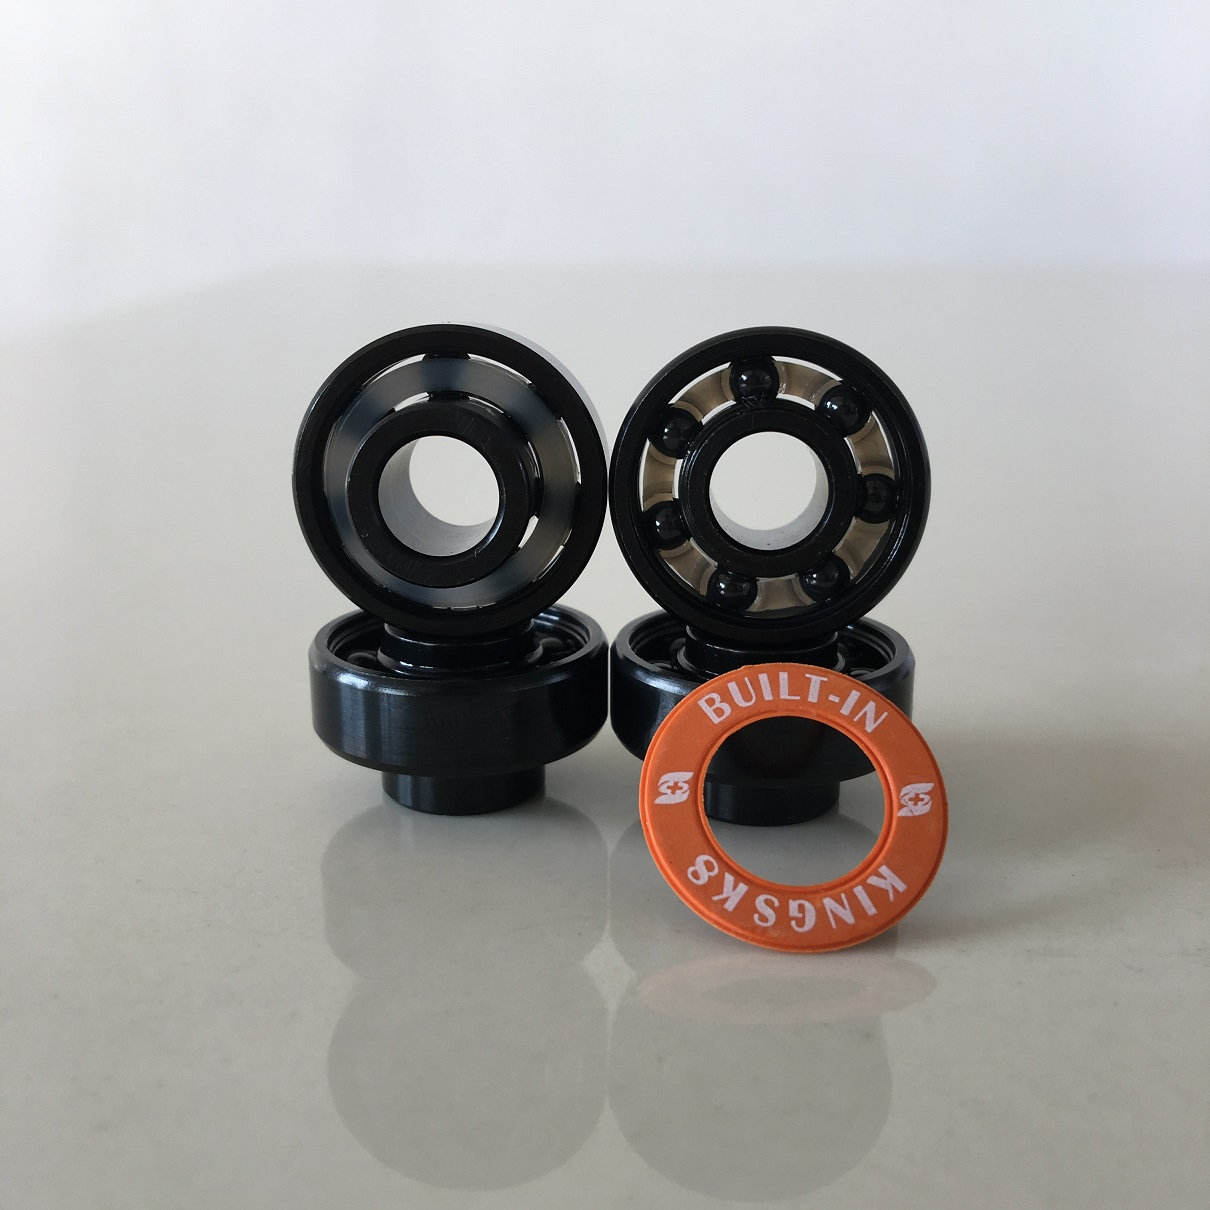 Kingsk8 Black Oxide Bulit-in Si3N4 Ceramic Skateboard Bearings